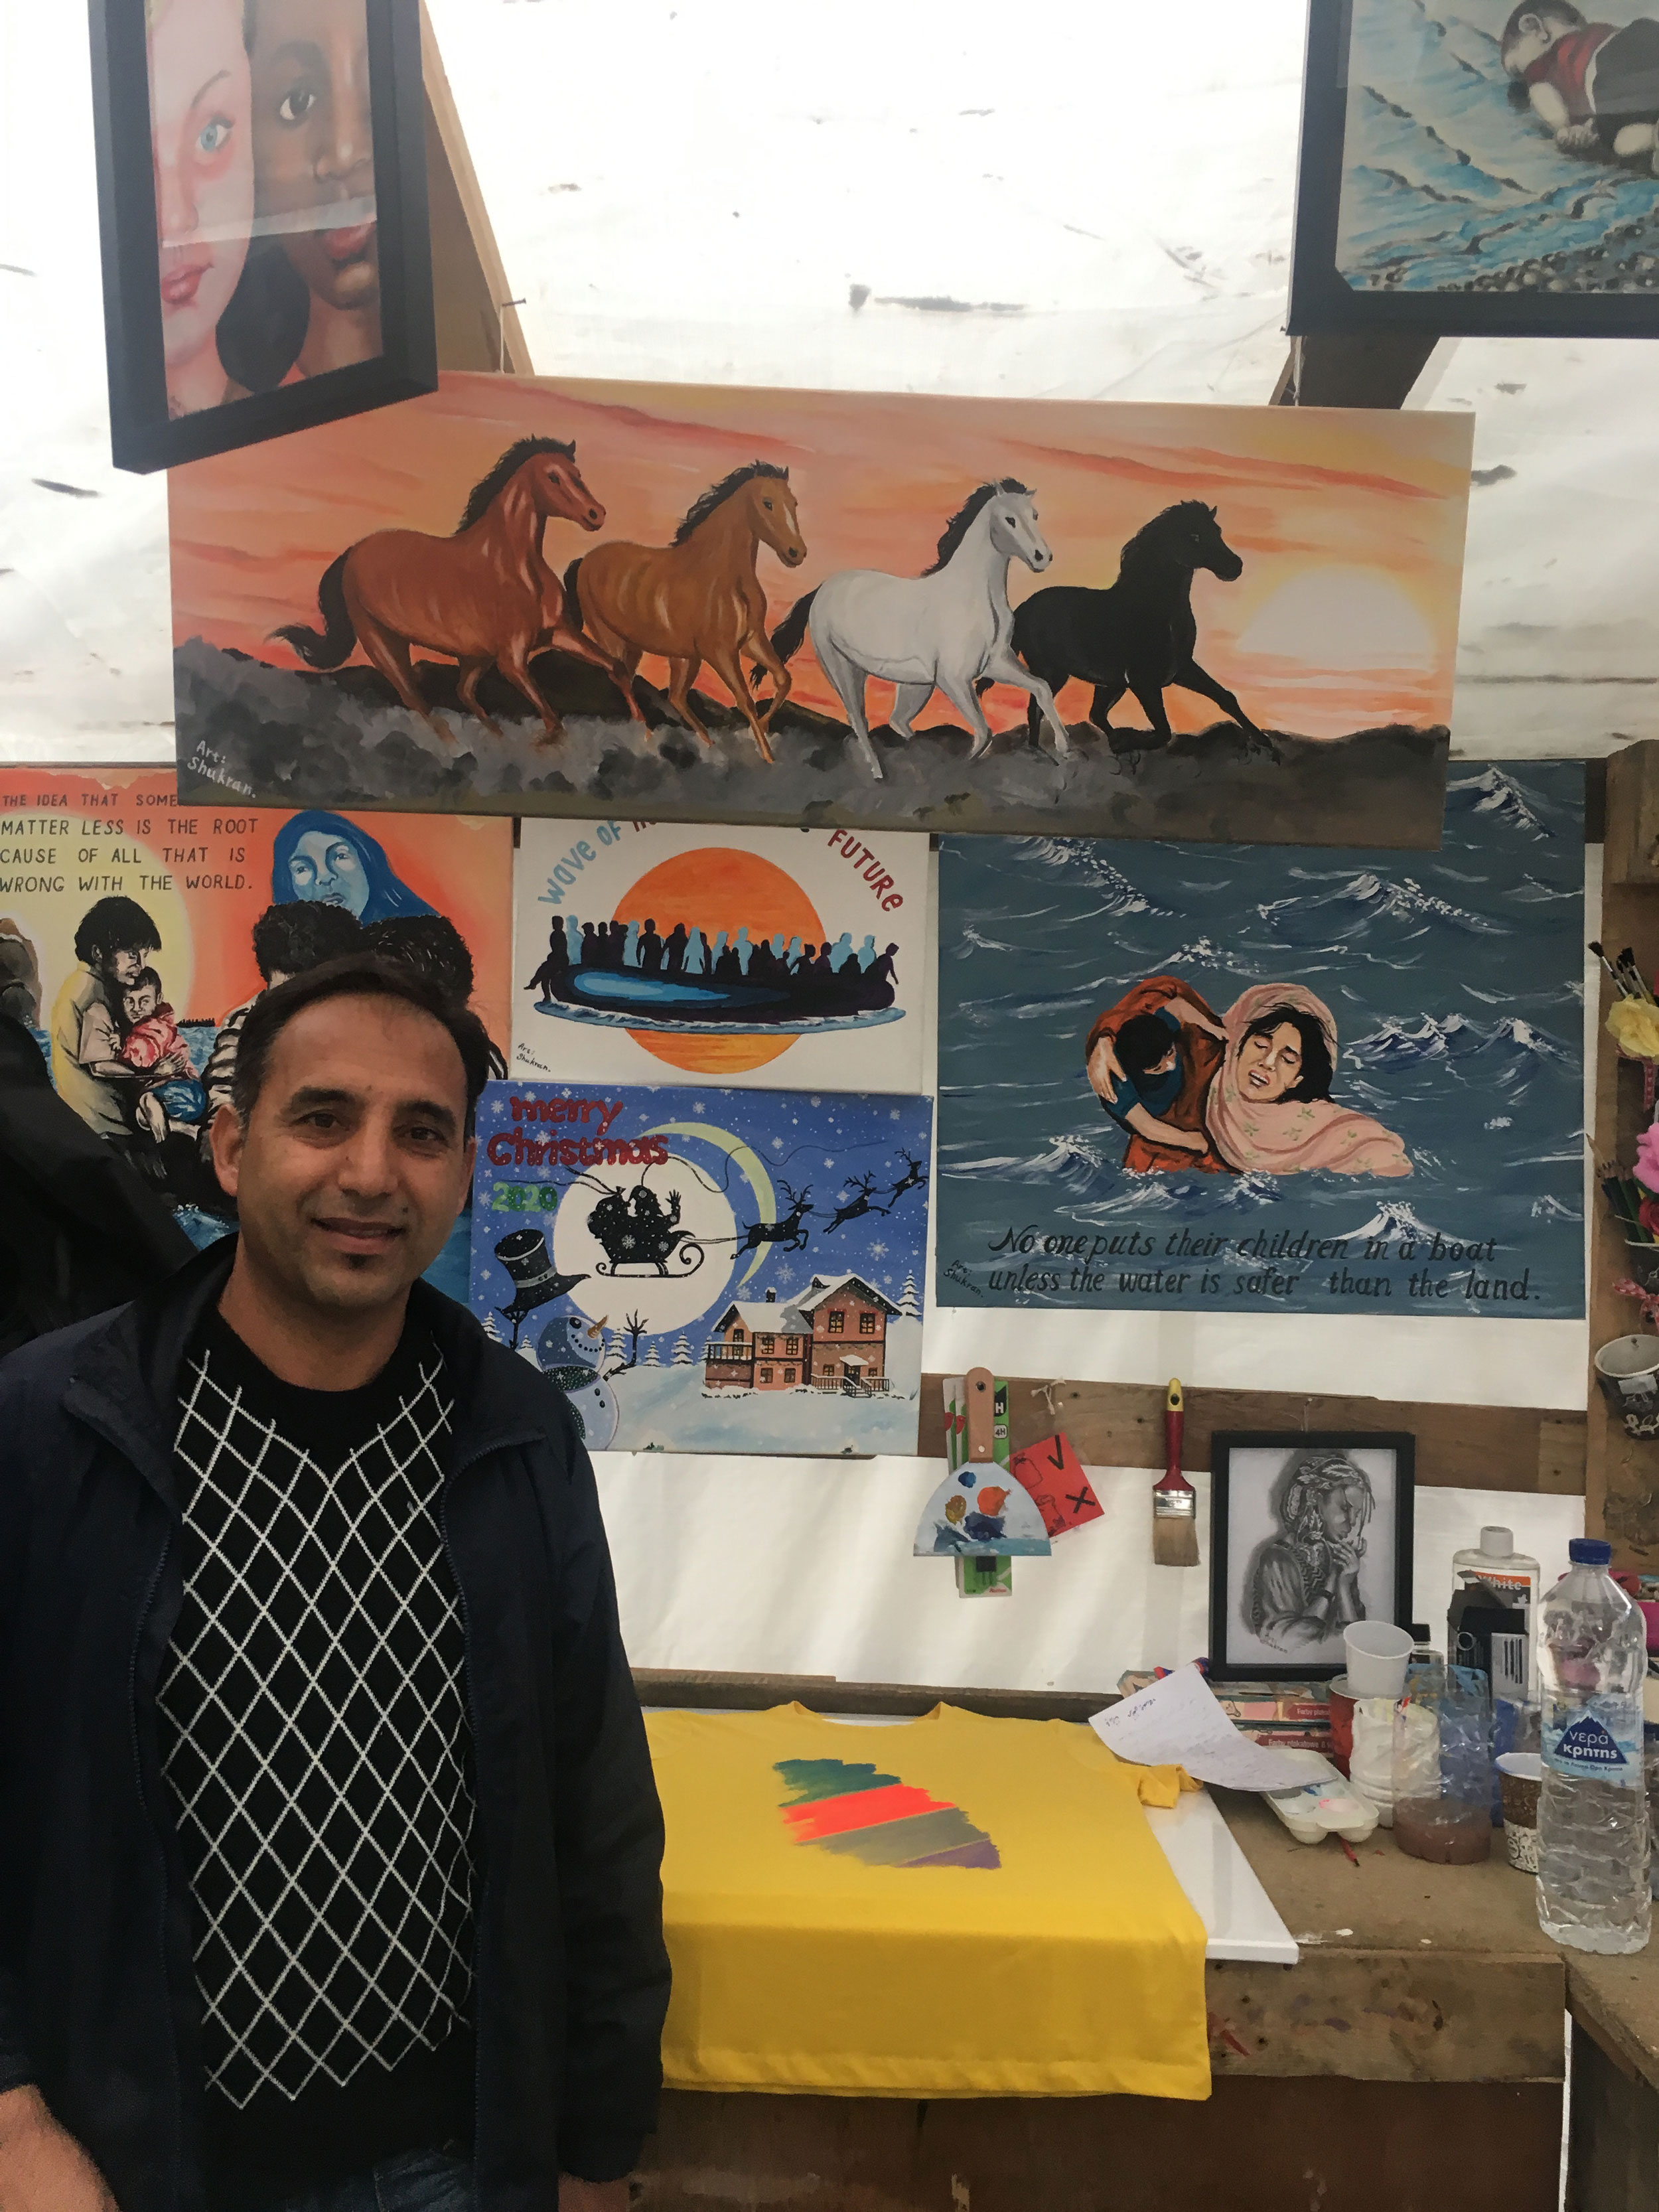 A man is shown standing in front of several pieces of art work including an illustration of four horses running.